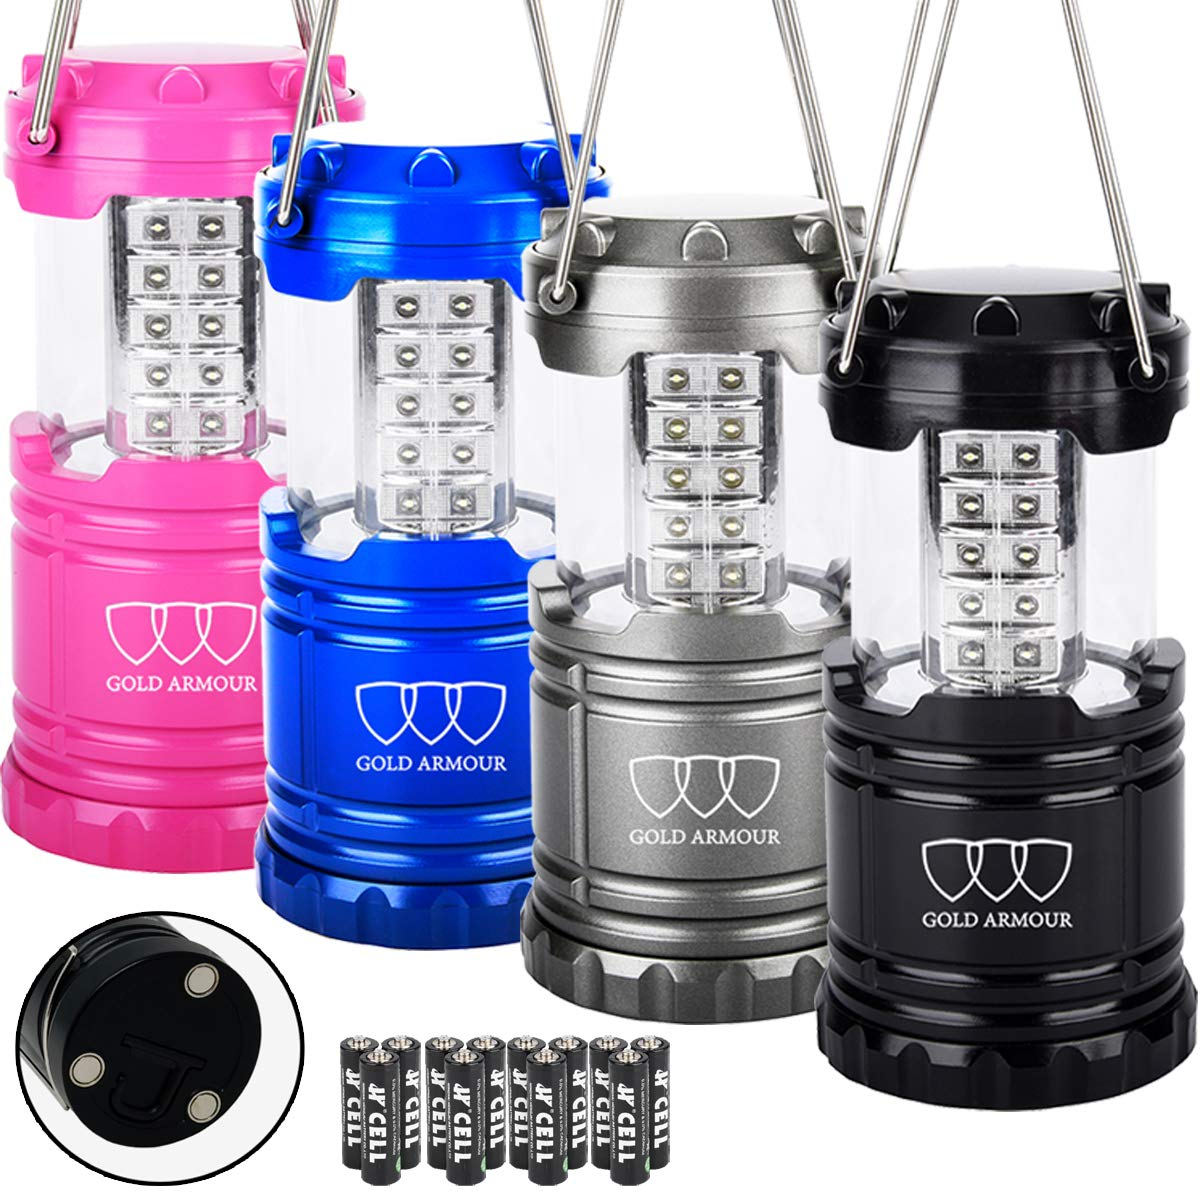 Gold Armour 4 Pack LED Lantern Camping Lanterns for Hiking, Emergency, Hurricanes, Outages, Storms - Camping Gear Accessories Equipment with 12 aa Batteries